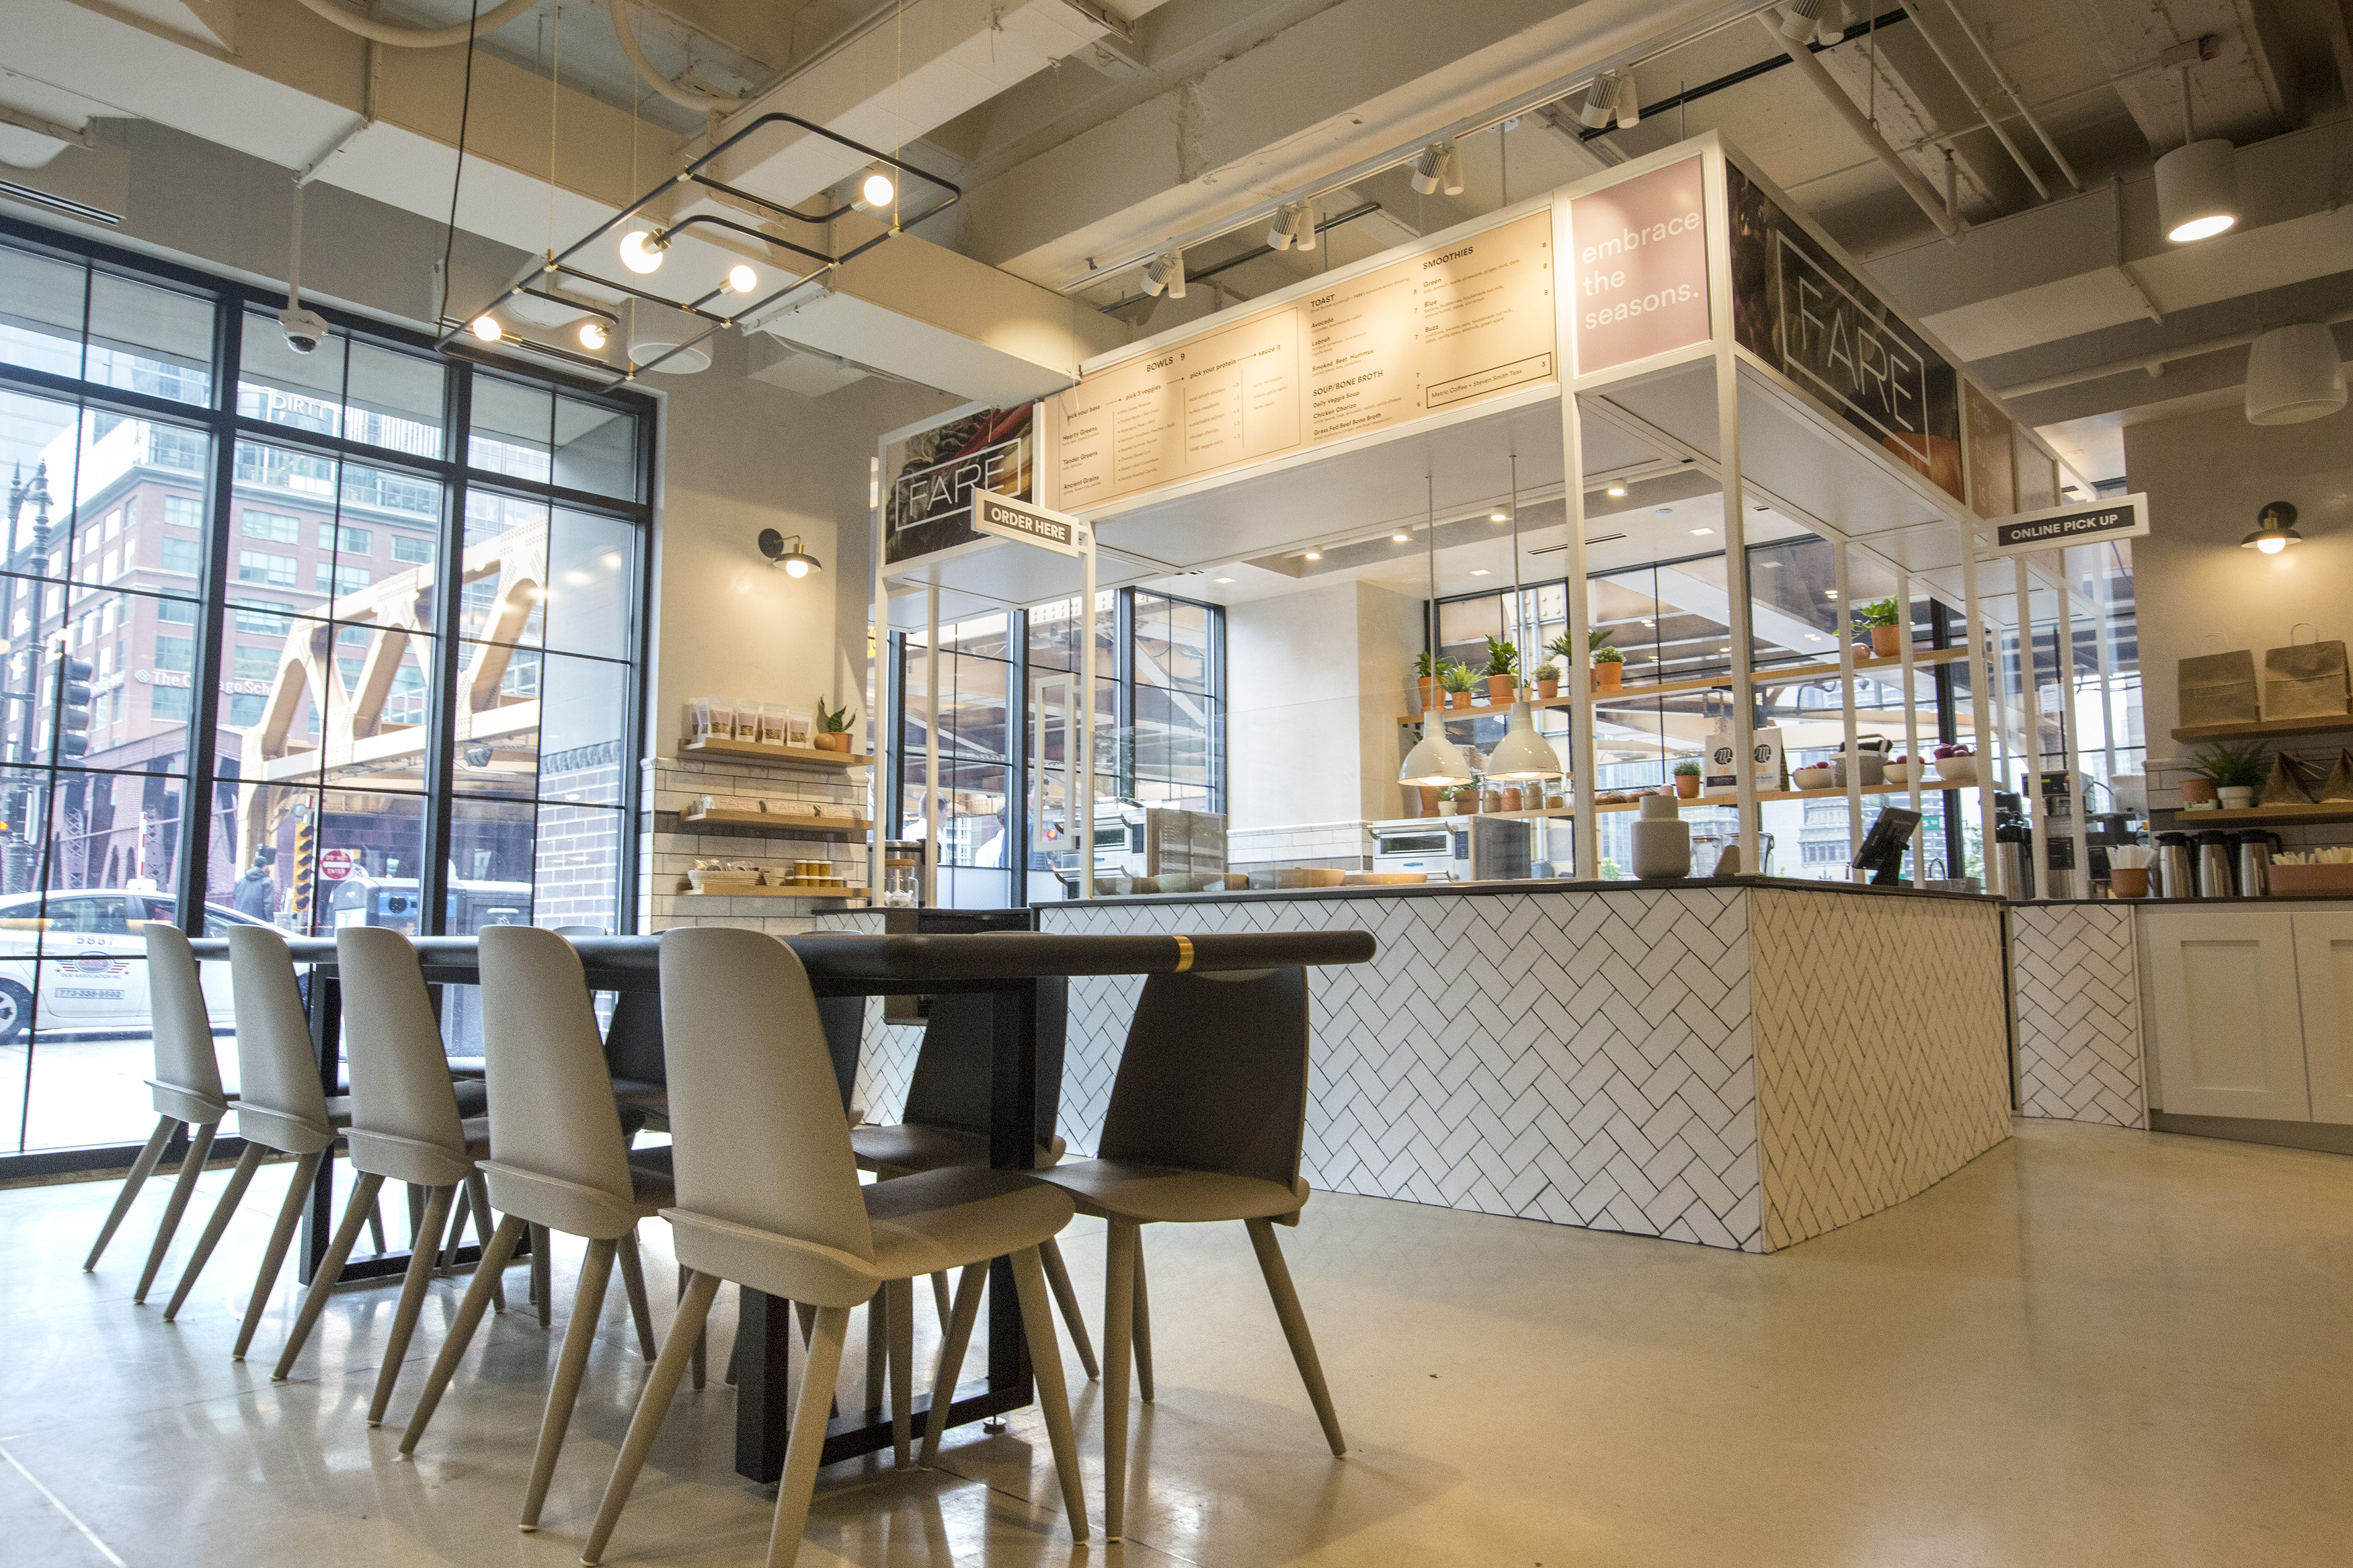 A sleek, white interior of a large food hall.